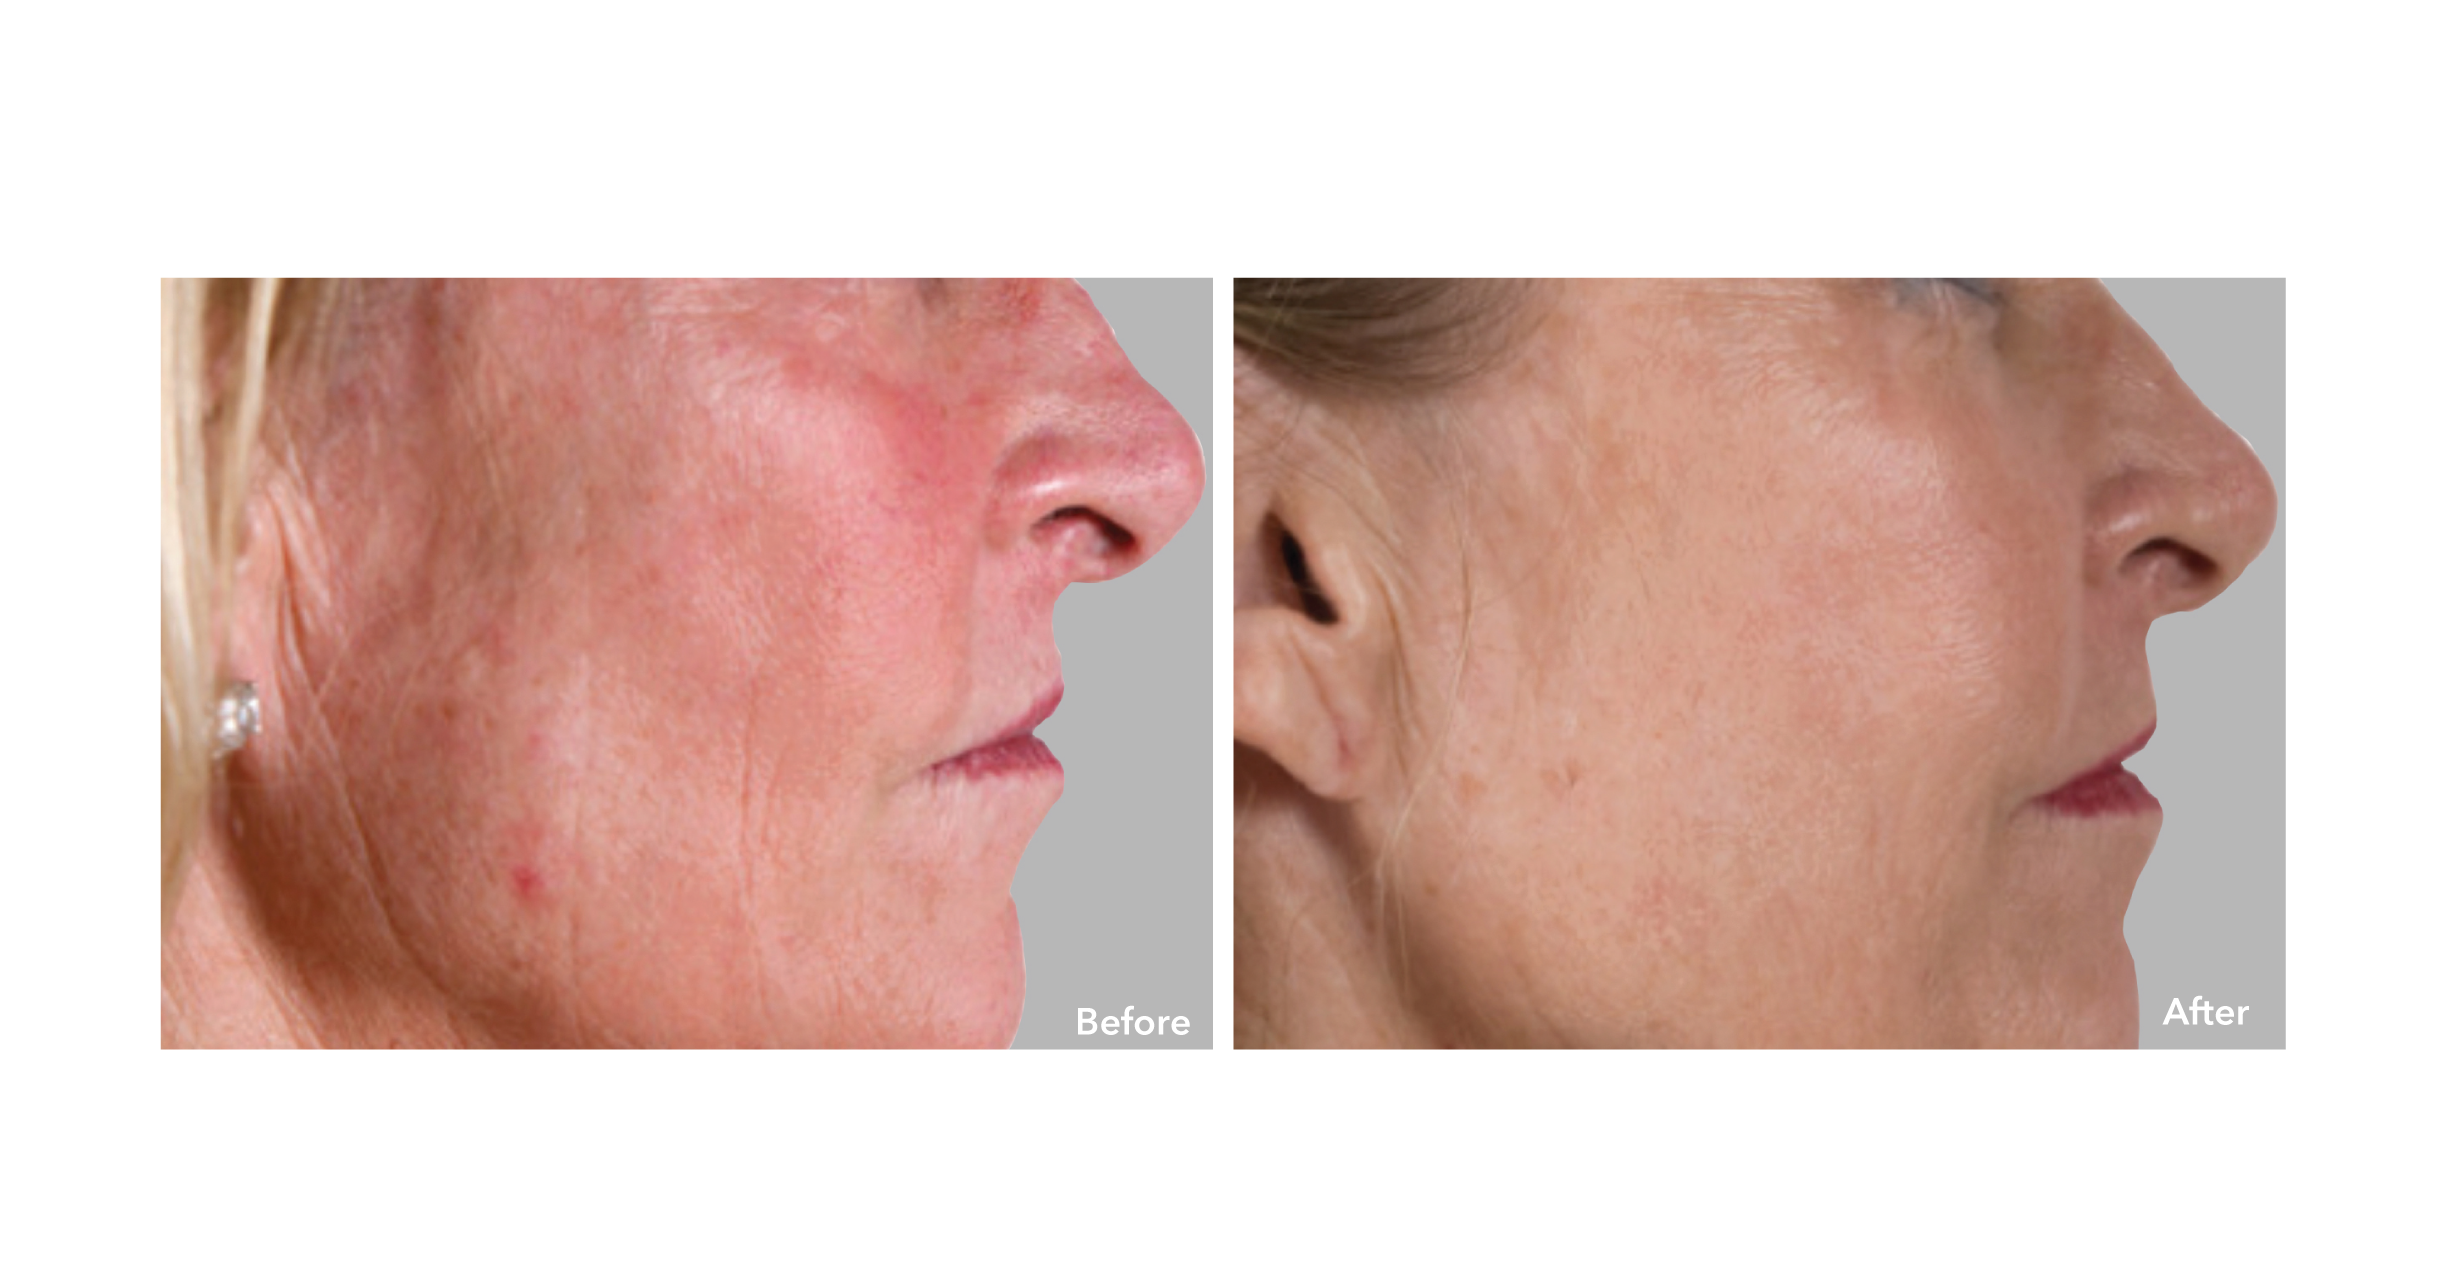 The AnteAGE MD Home Skin Care System (a medical grade skin care product) is a perfect to help all skin types be healthier and appear younger.